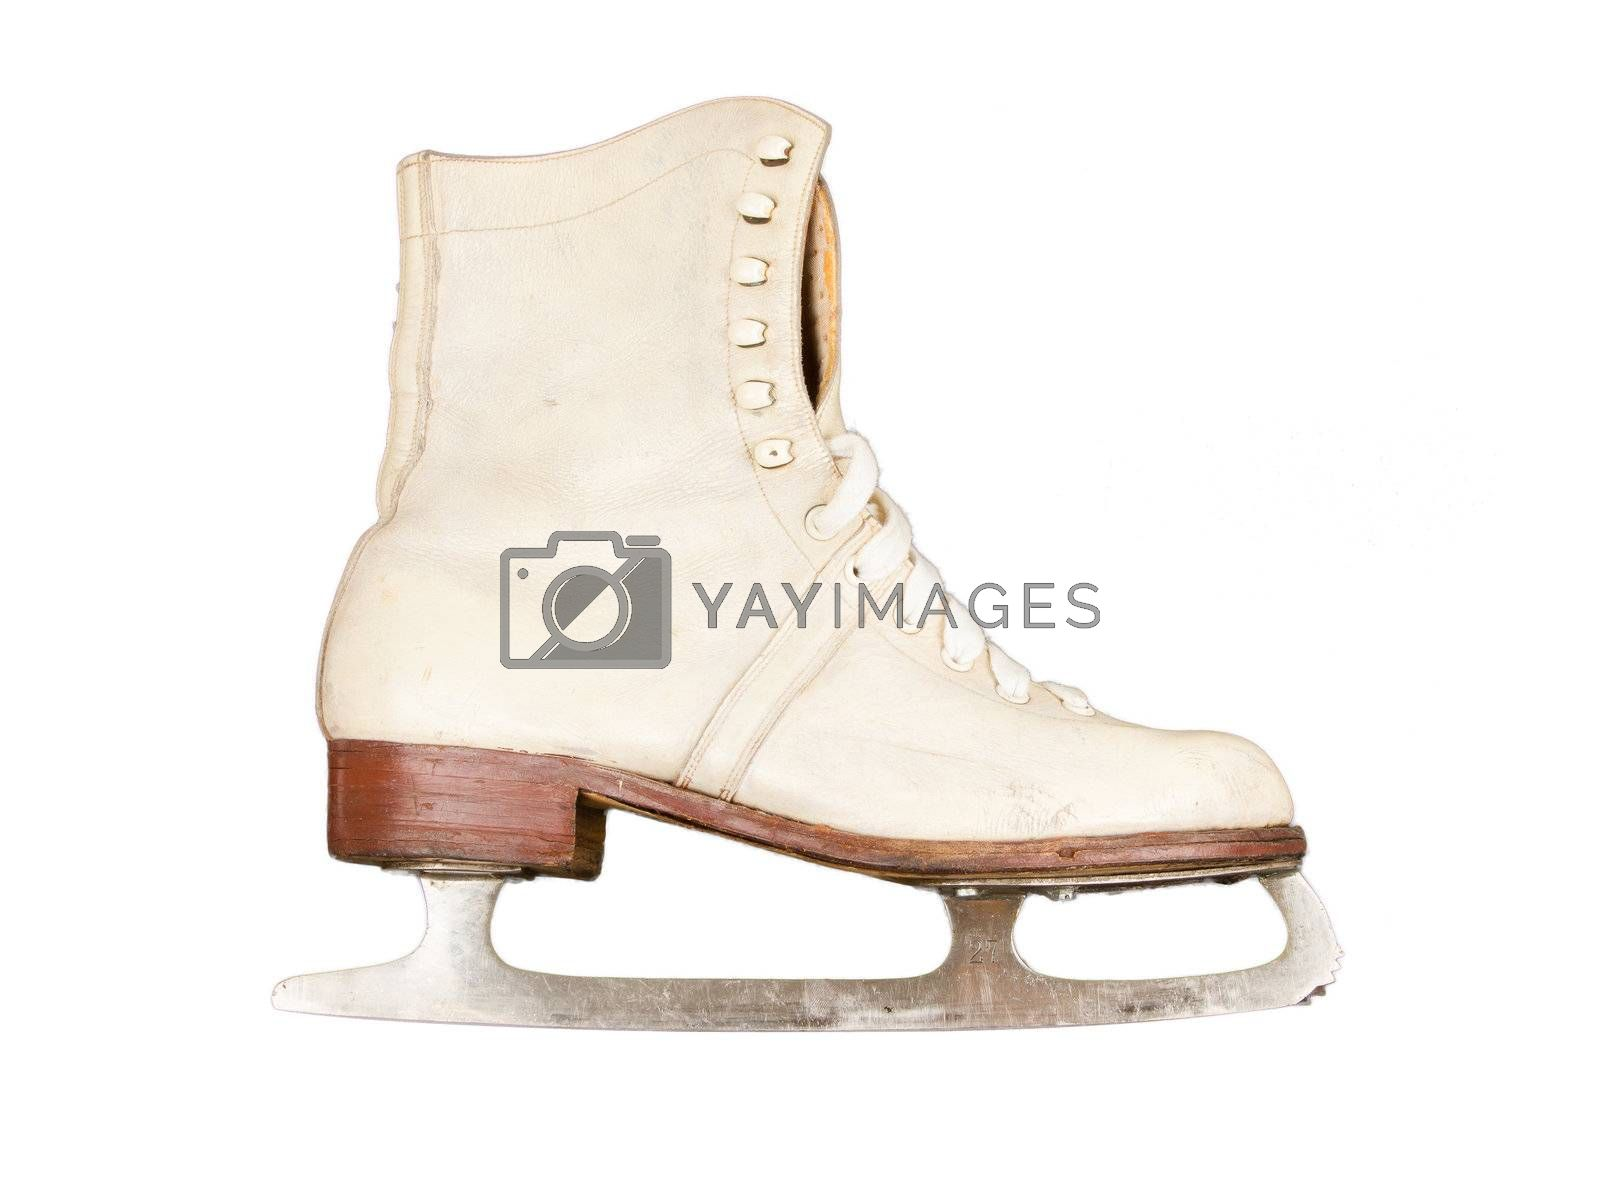 Very old figure skate, isolated on white background